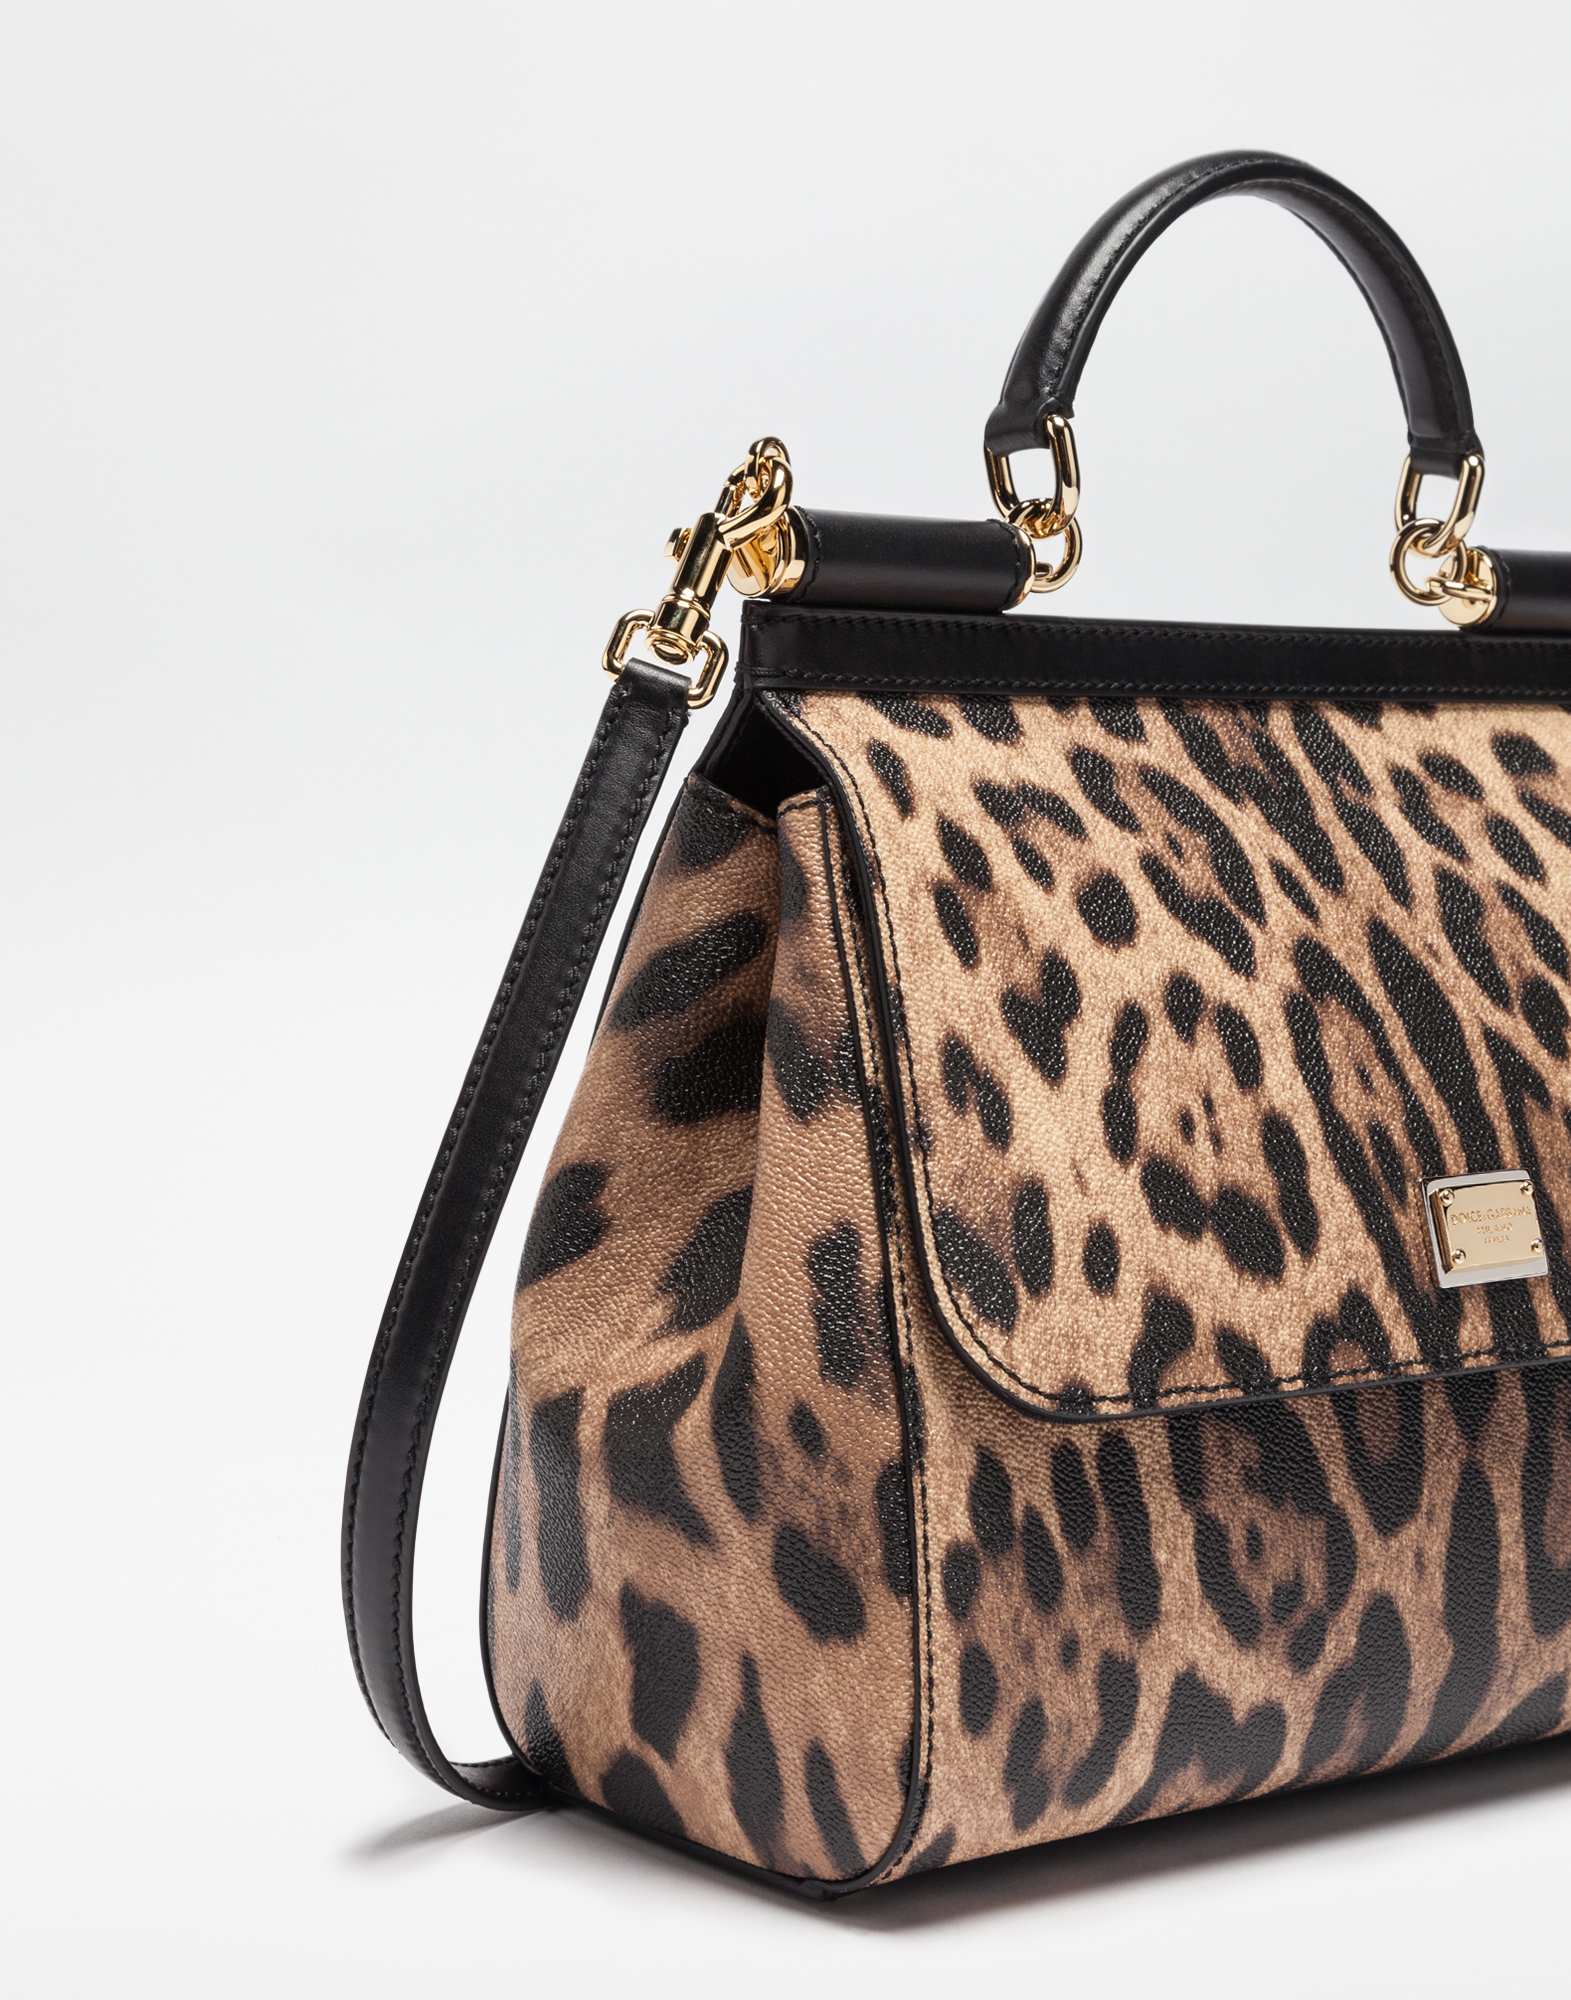 cadc80be88 Regular Sicily Bag In Leopard Textured Leather - Women